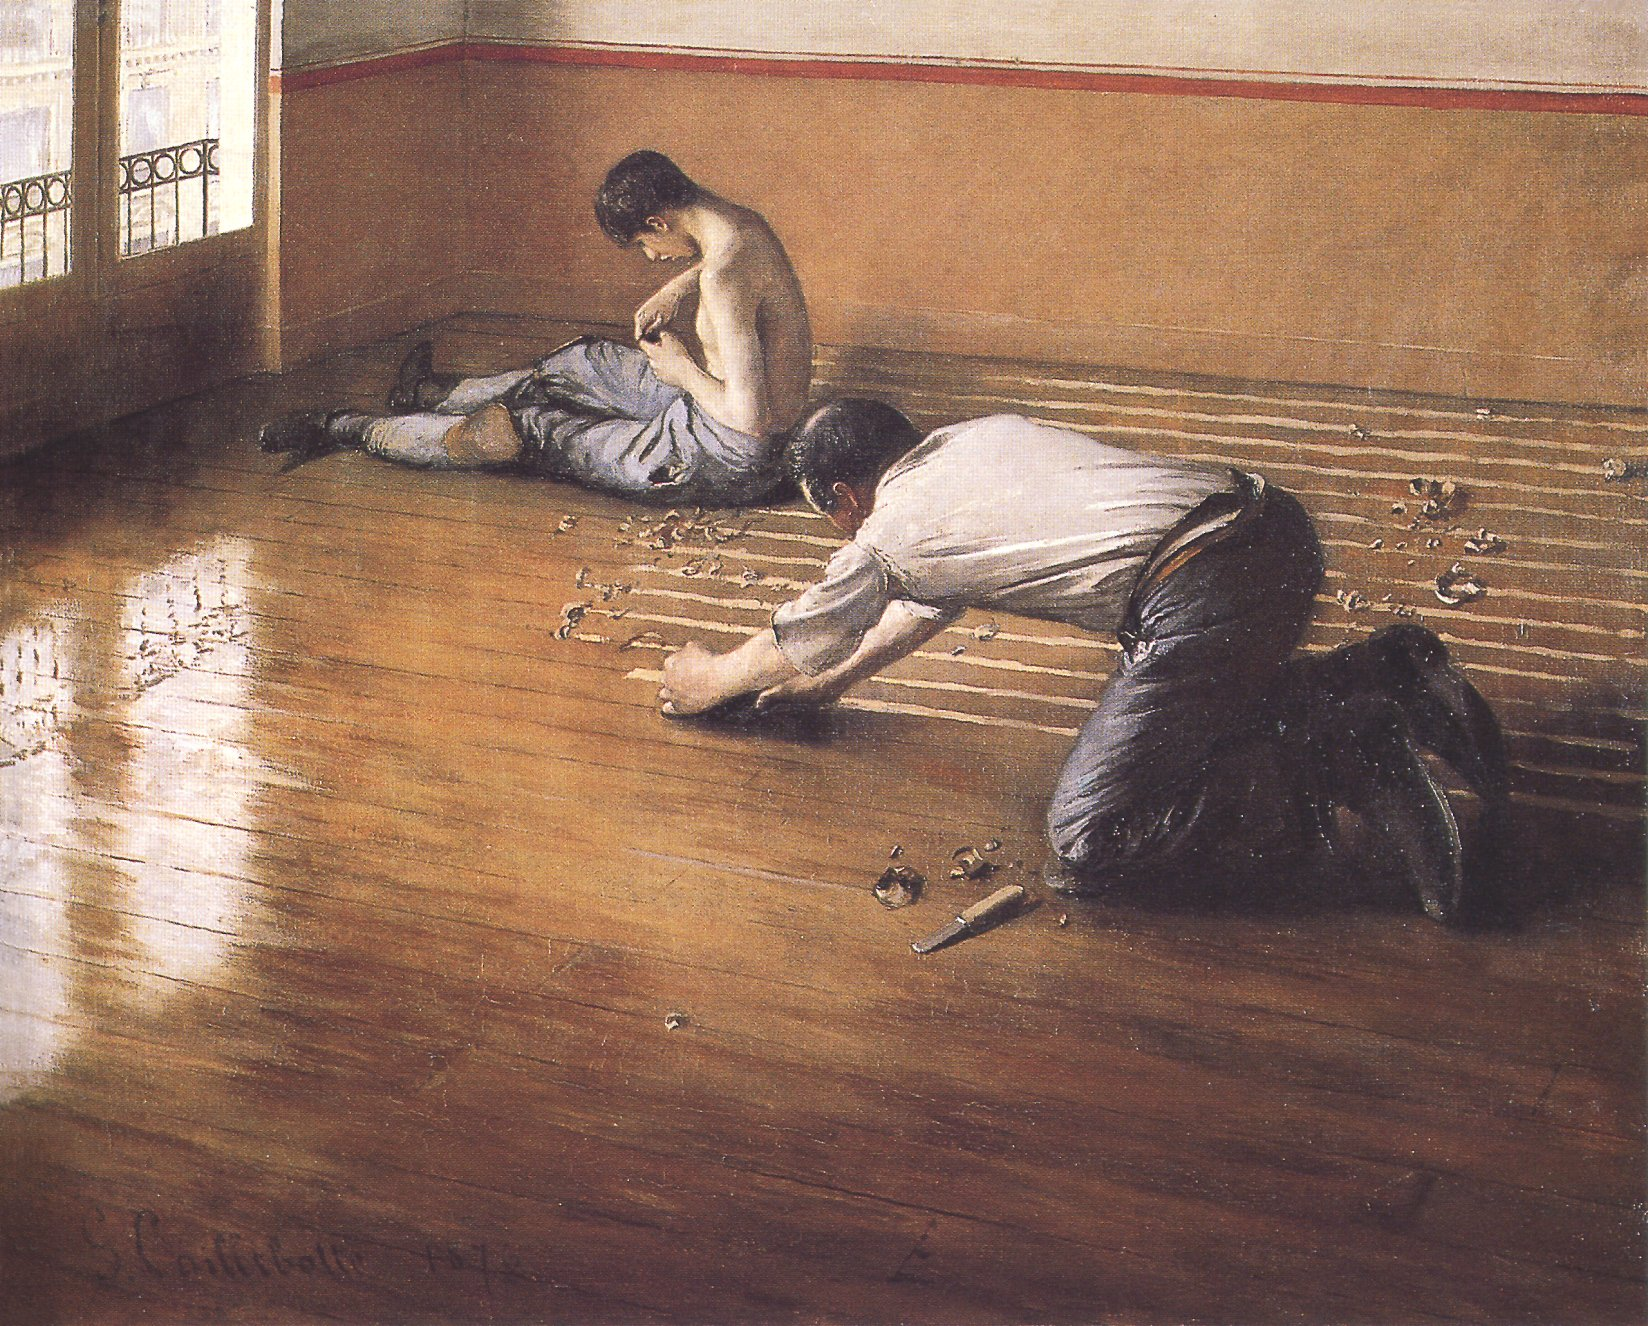 a biography of french artist gustave caillebotte Gustave caillebotte oil painting reproductions for sale create oil paintings from your images, fine art by hand-painted with oil on canvas french painter, 1848-1894.